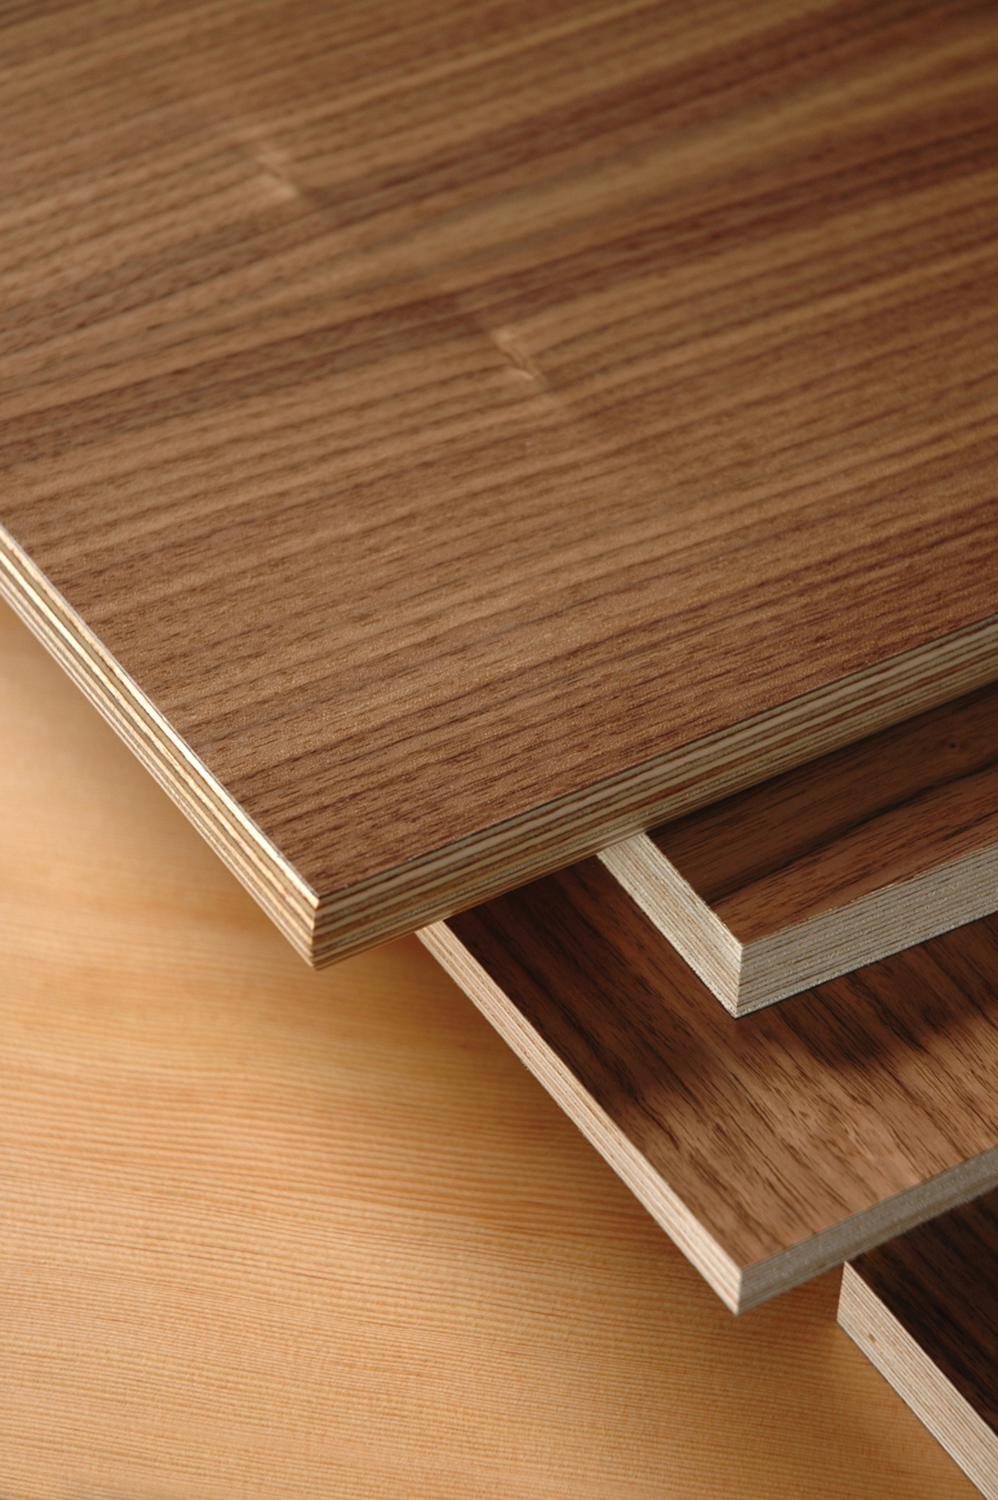 Europly plus™ and mpx hardwood plywood panels from